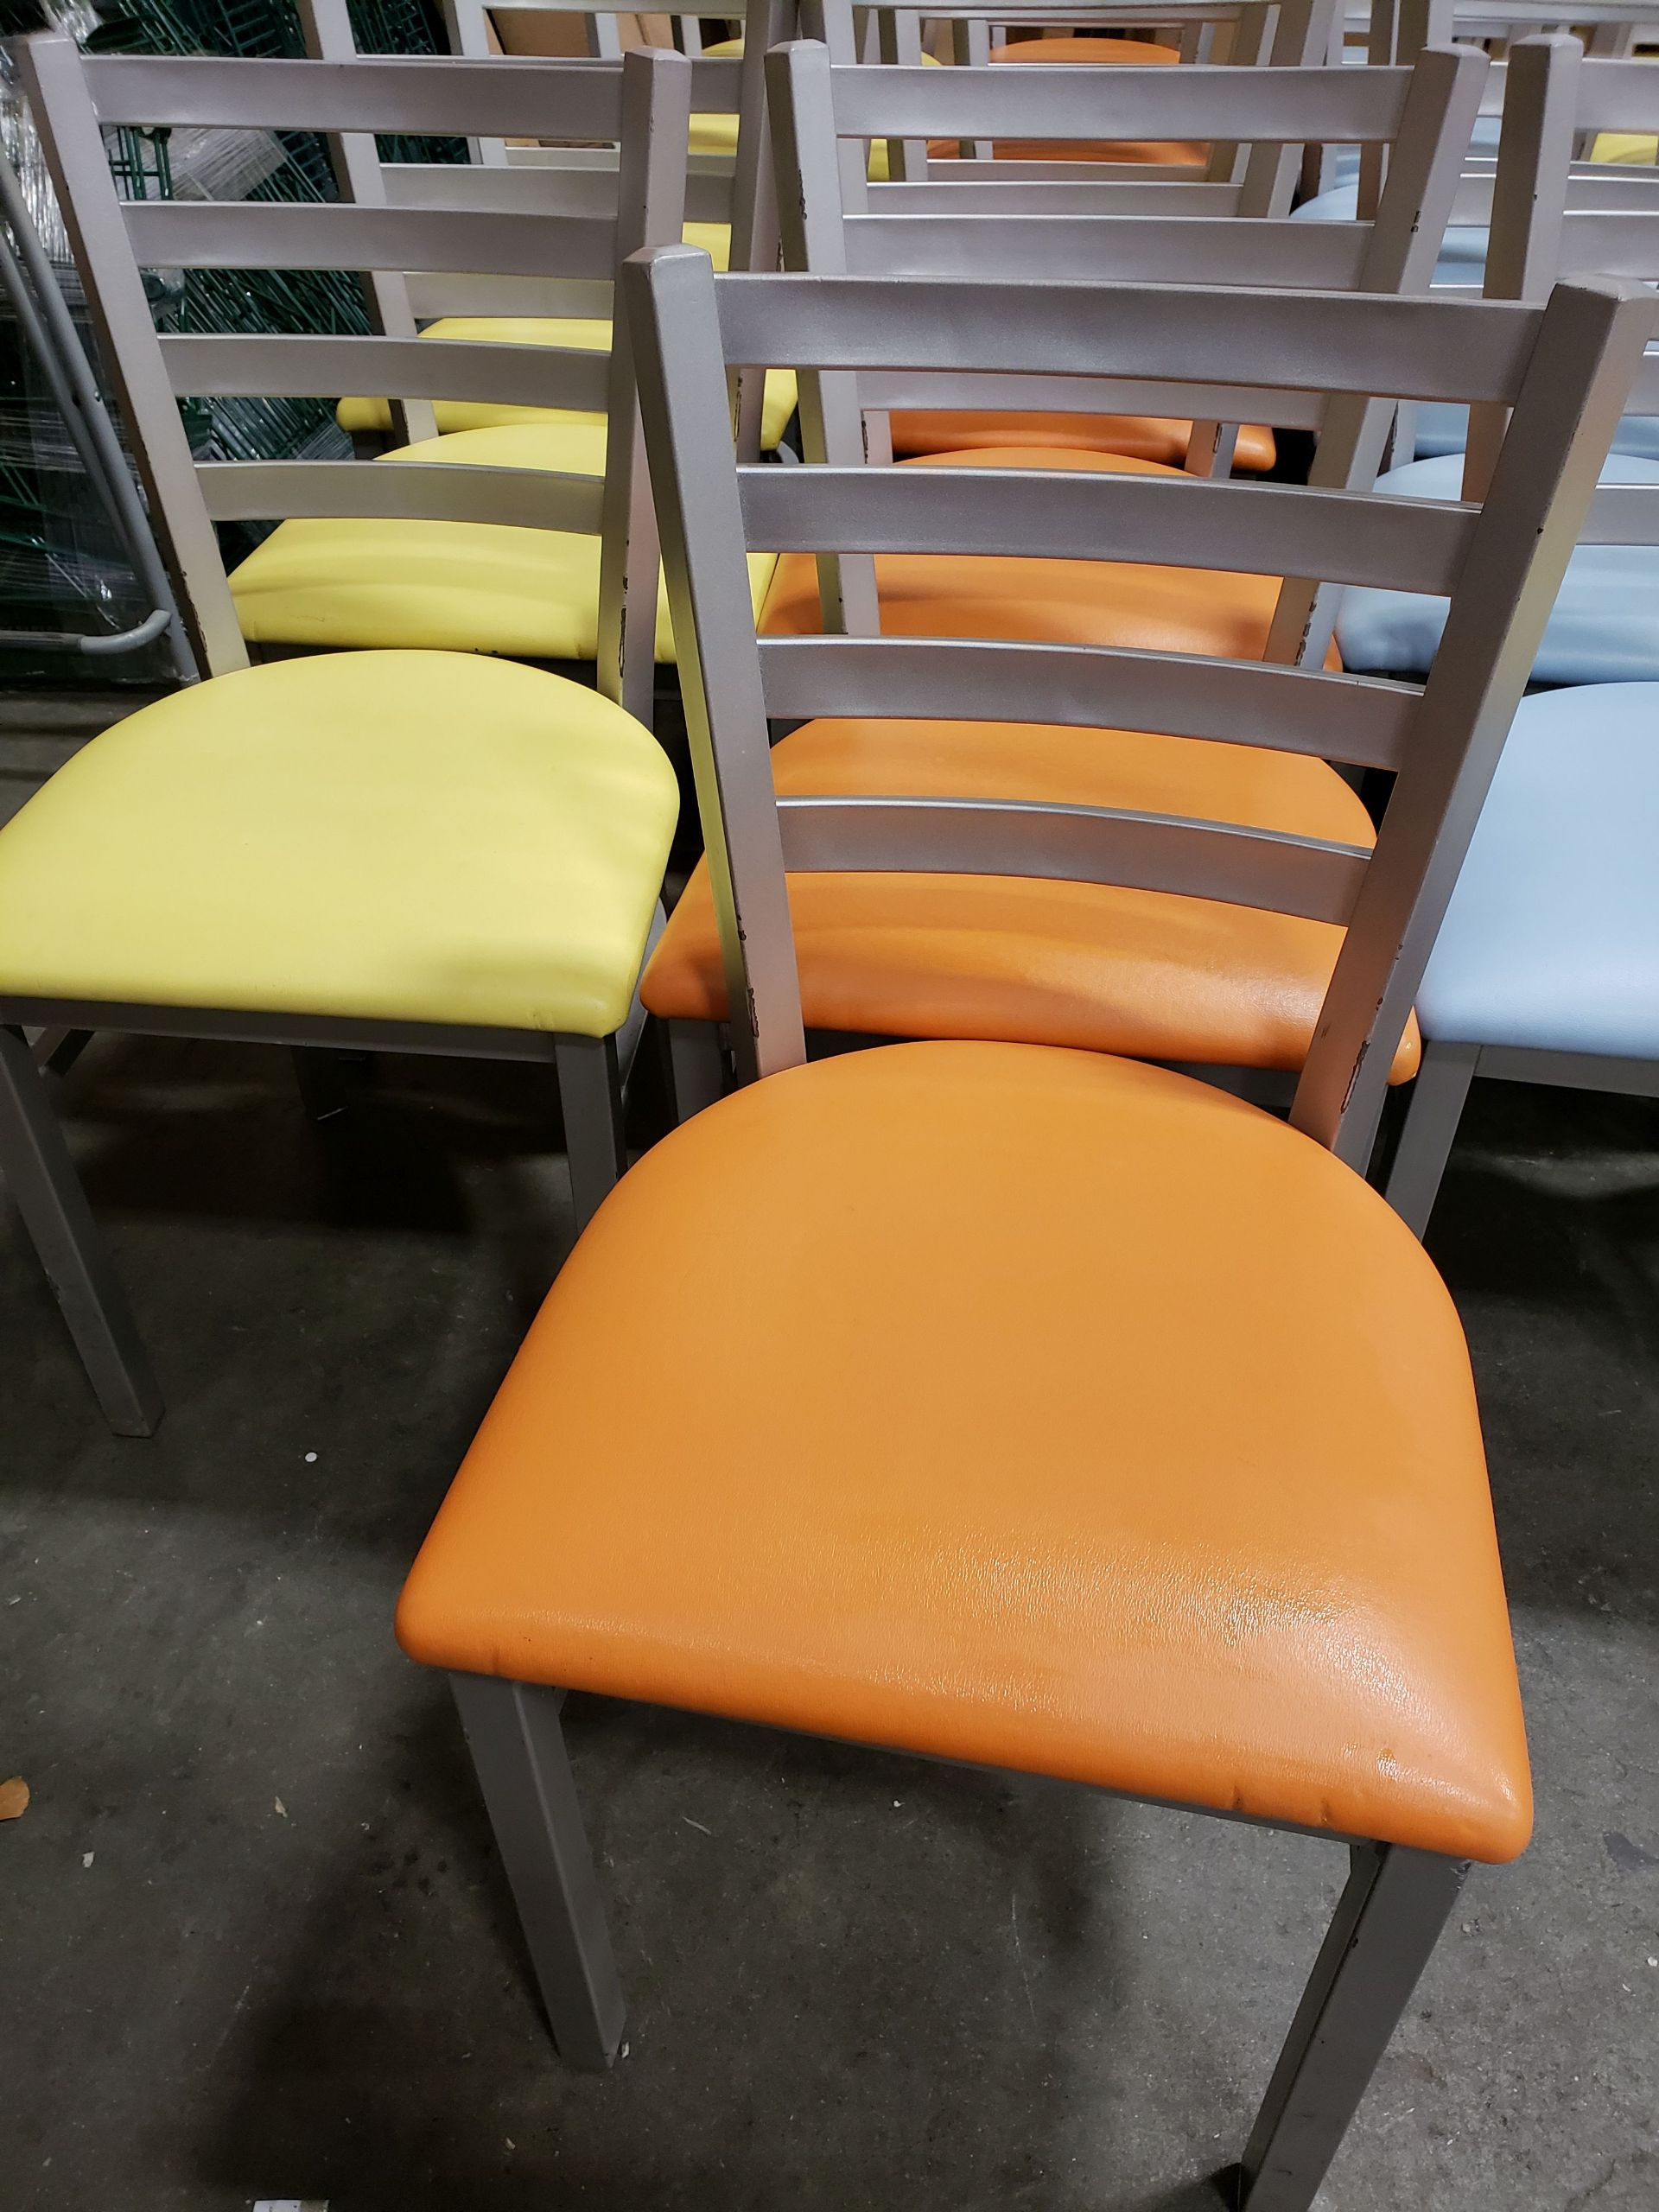 Lot 57 - Metal Frame Chairs with Padded Seats - Lot of 37